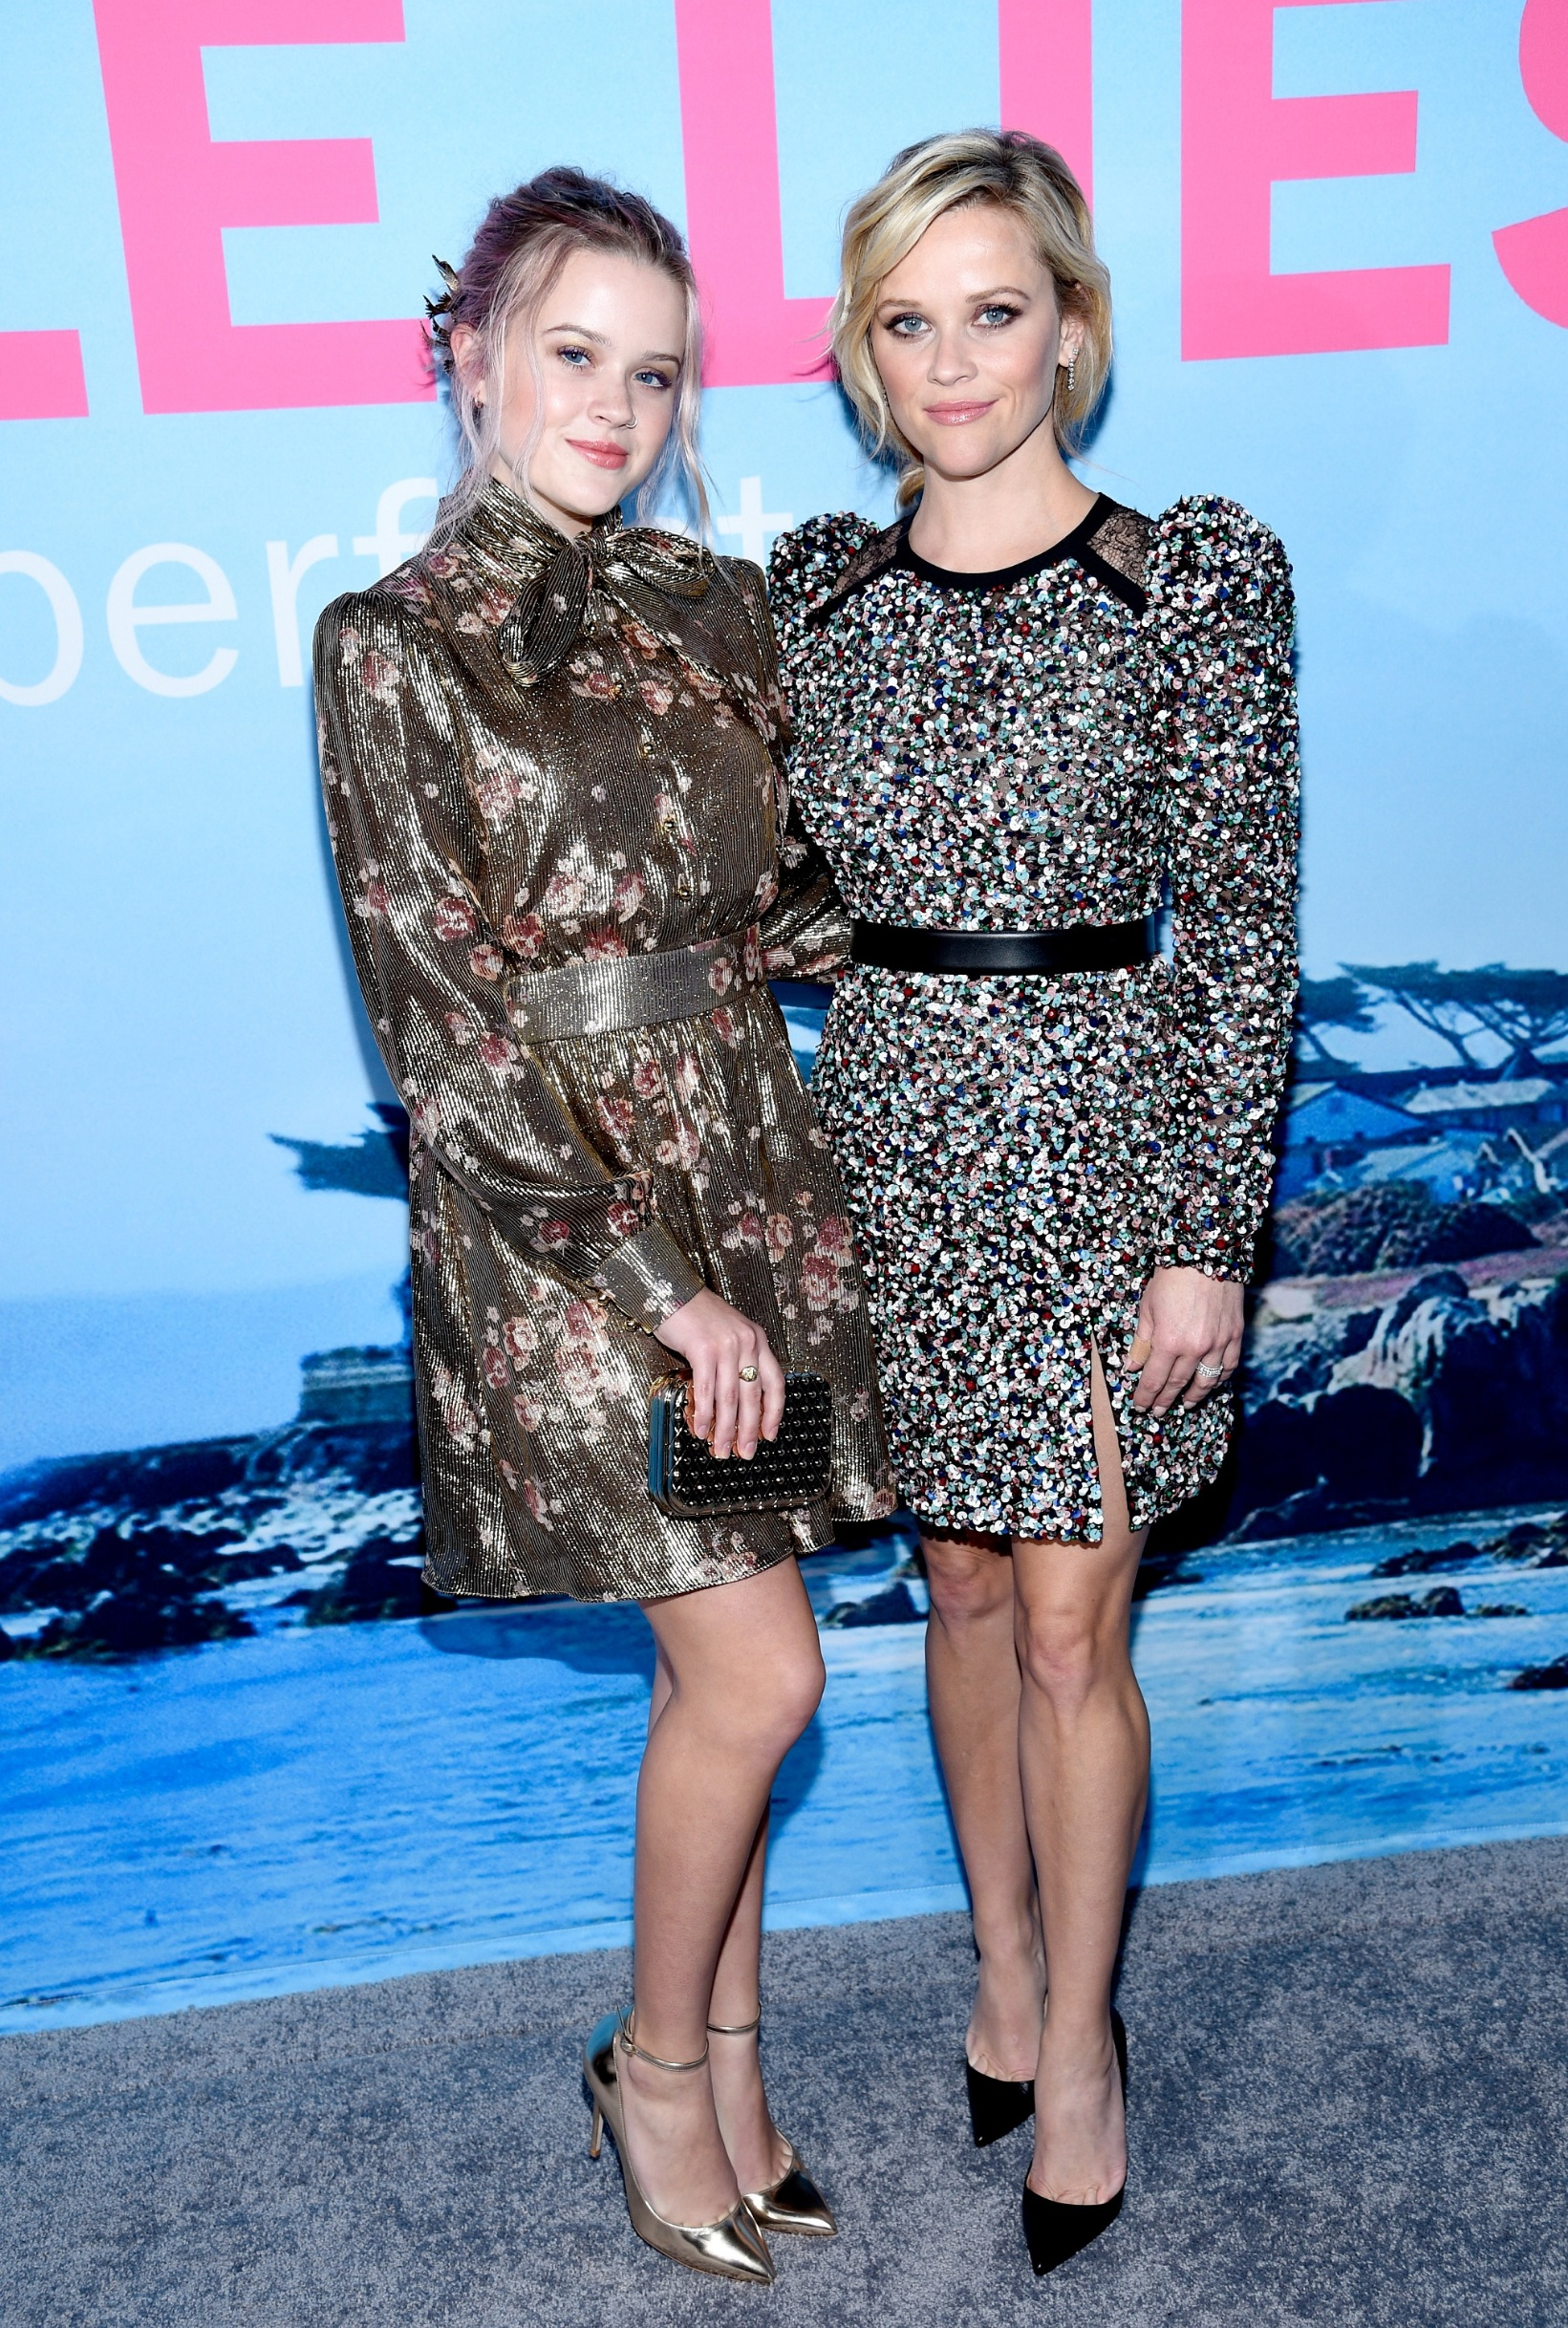 HOLLYWOOD, CA - FEBRUARY 07:  Ava Elizabeth Phillippe (L) and actress Reese Witherspoon attend the premiere of HBO's